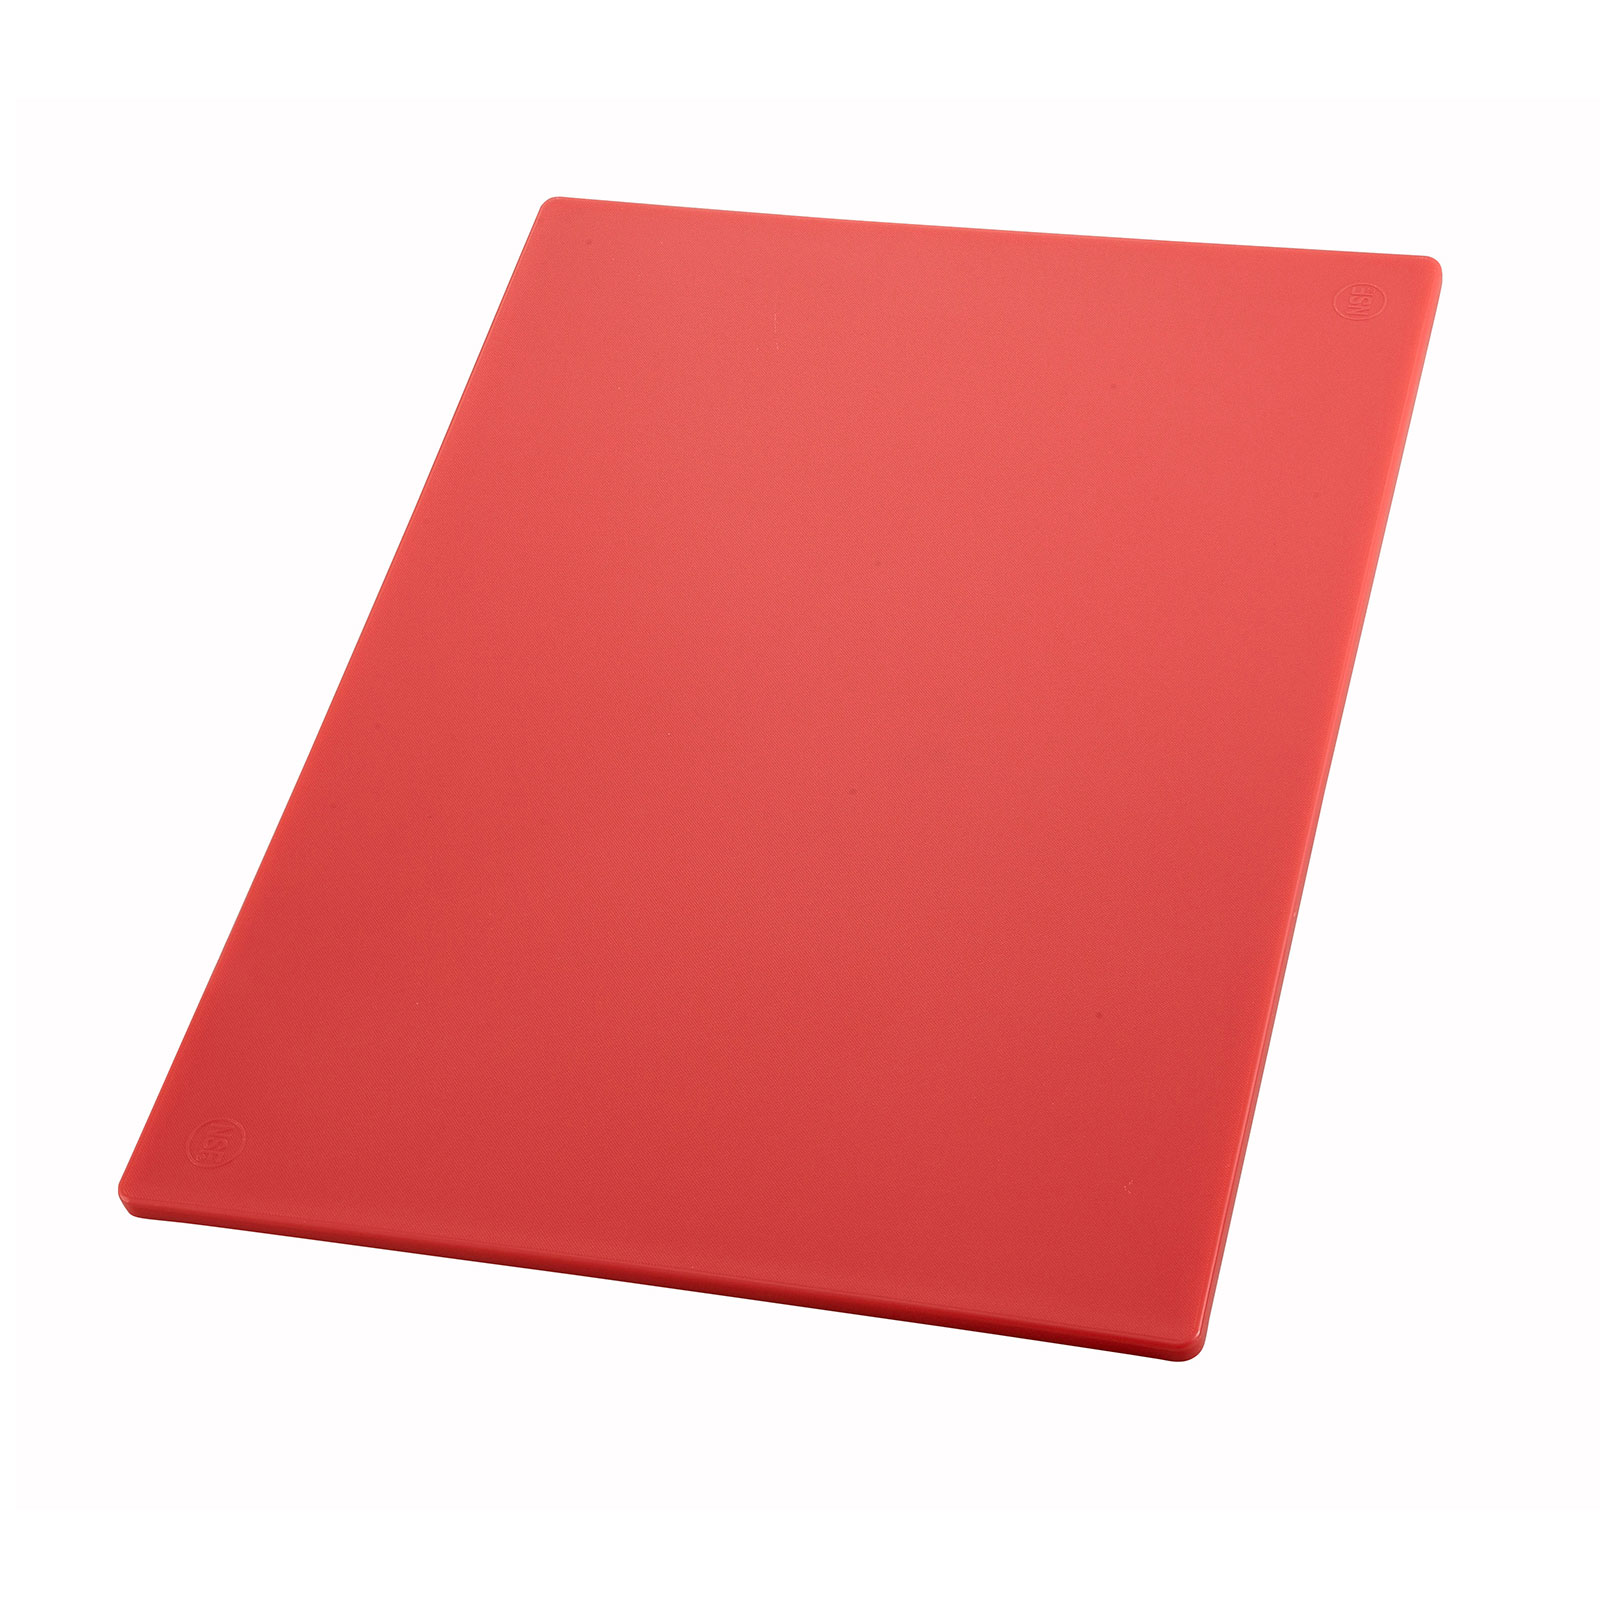 1700-130 Winco CBRD-1824 cutting board, plastic